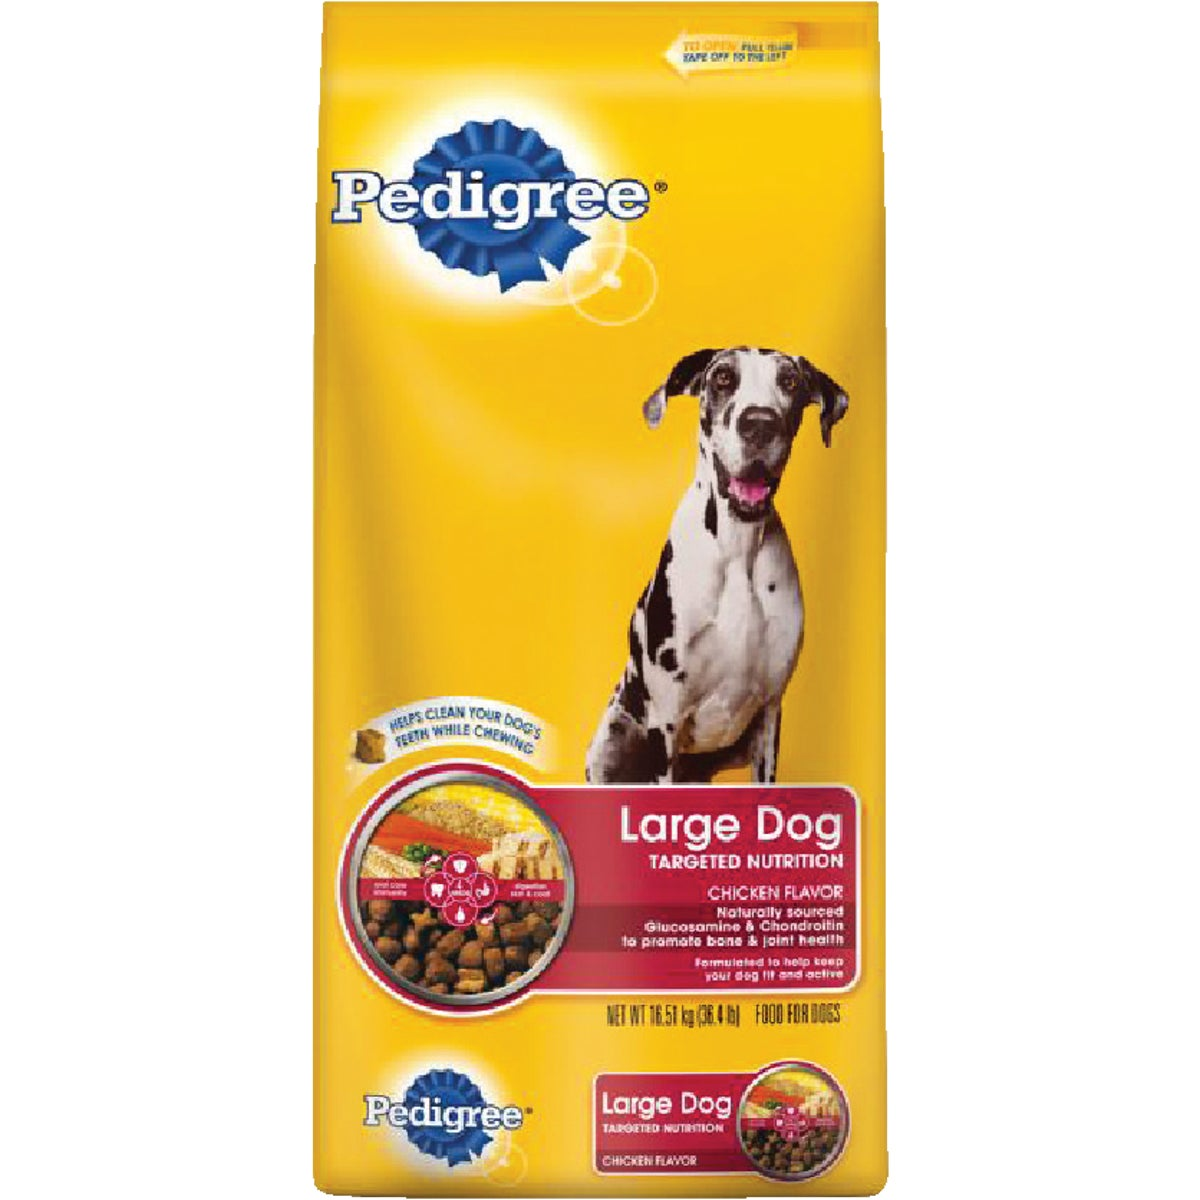 36.4LB LRG BREED DOGFOOD - 10084189 by Mars Pedigree